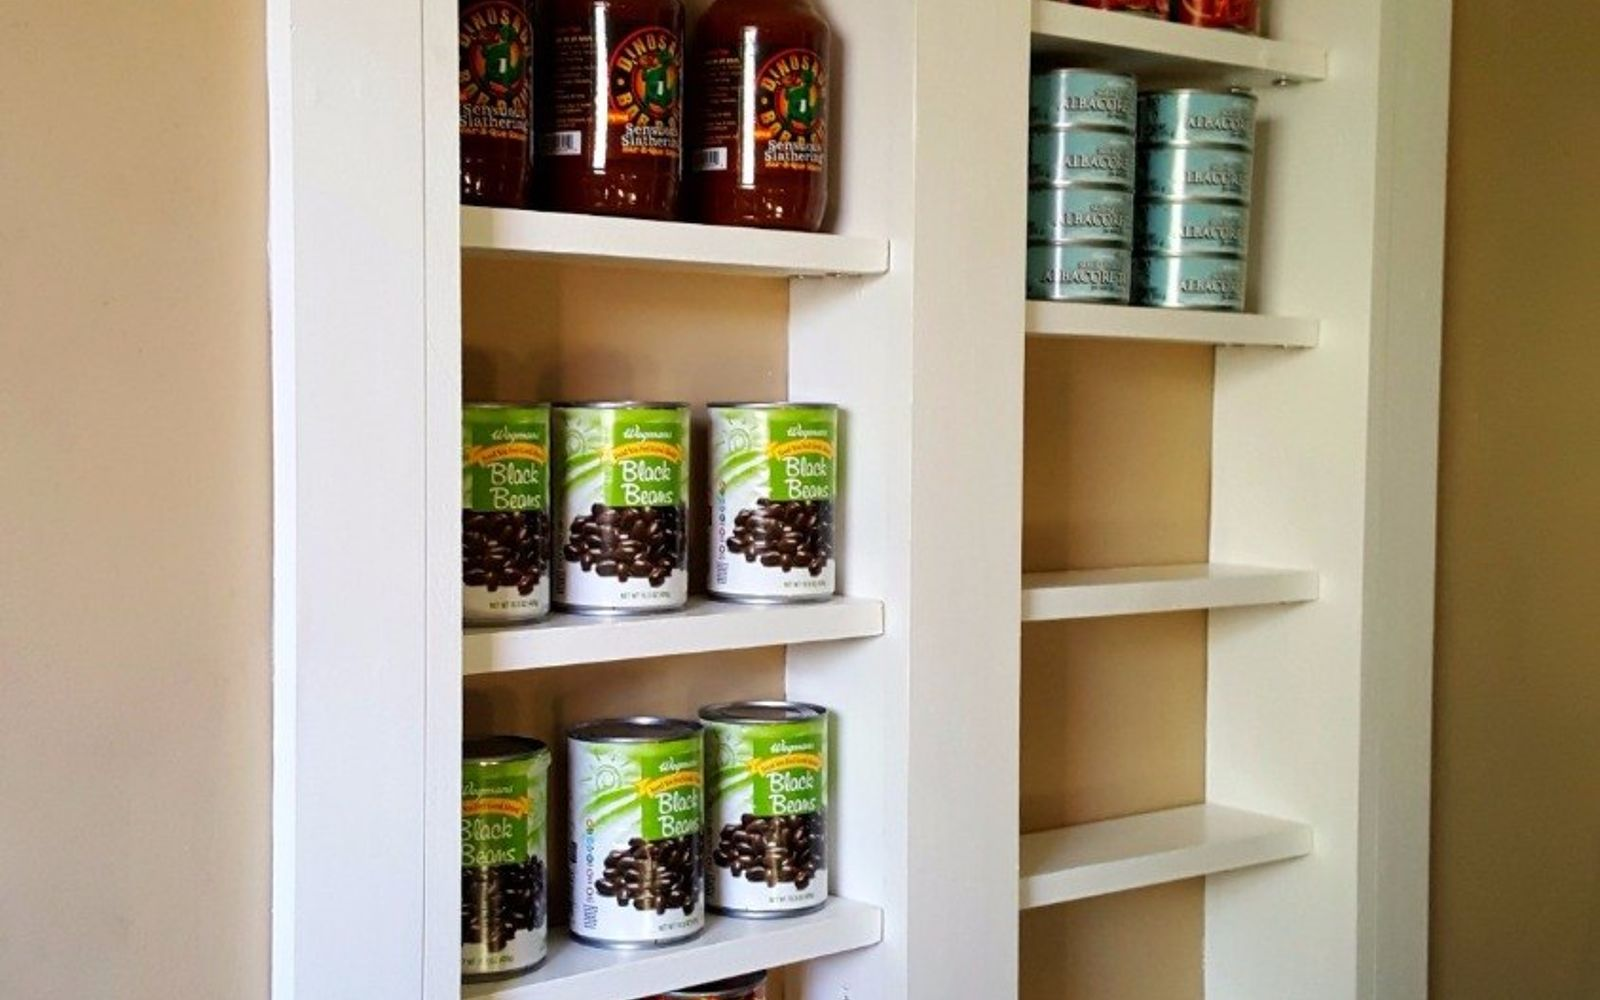 s 15 pinterest worthy pantries that eliminate search time for your favo, Build A Pantry Just Outside The Kitchen